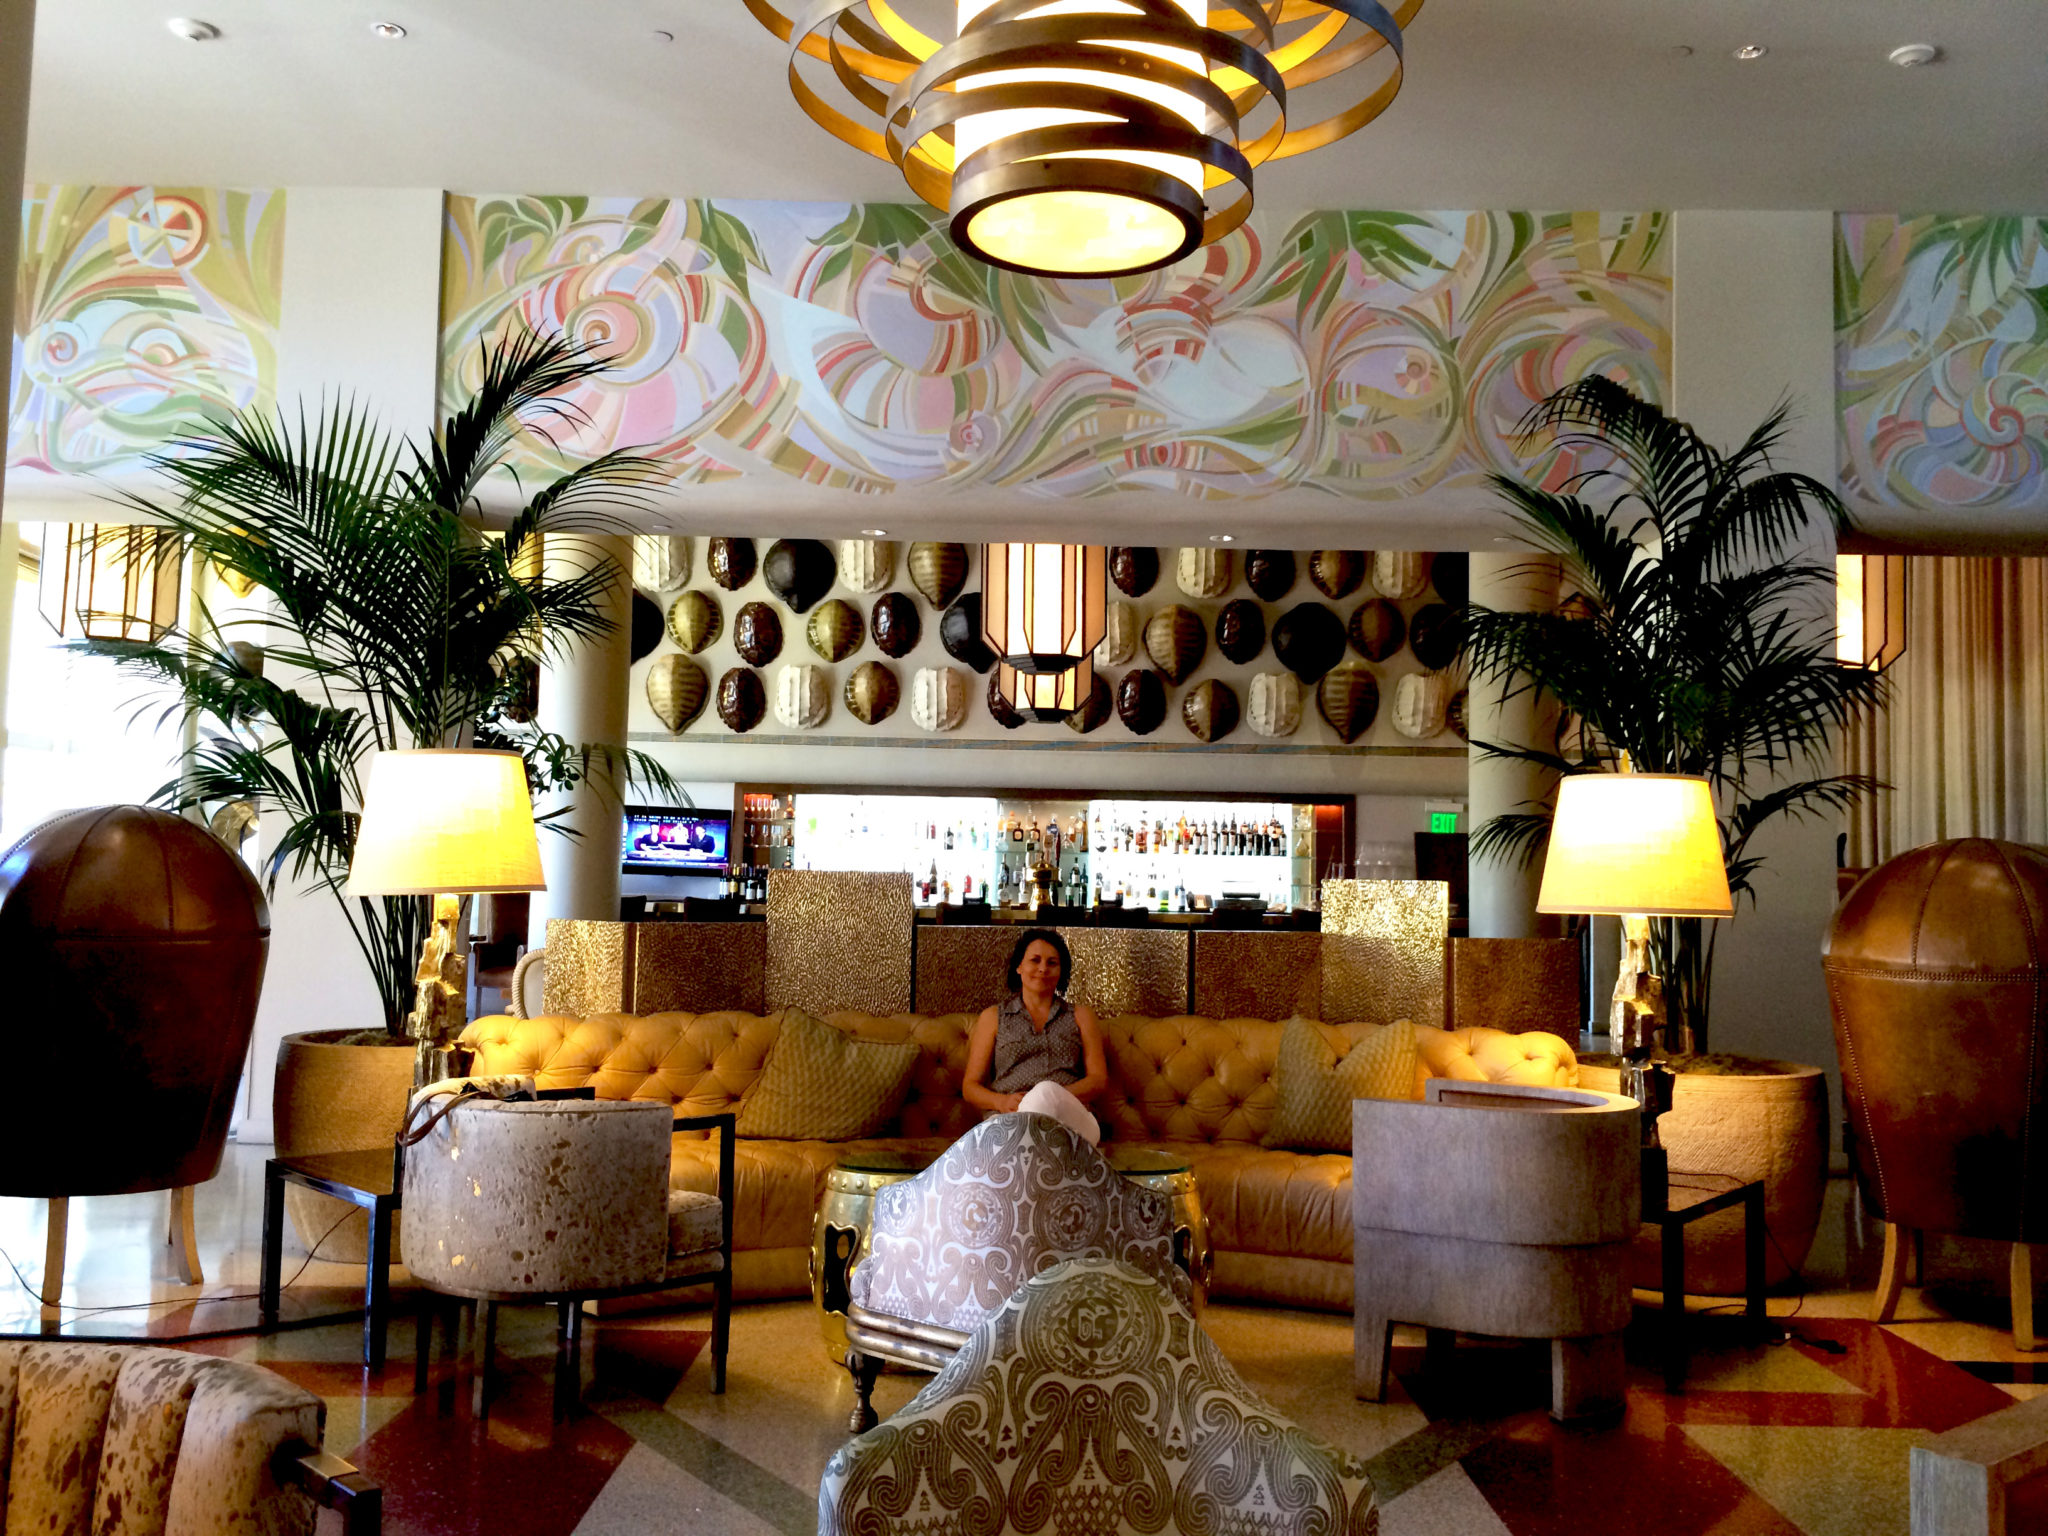 Commercial mural art deco 8 tides hotel lobby miami beach for Commercial mural painting